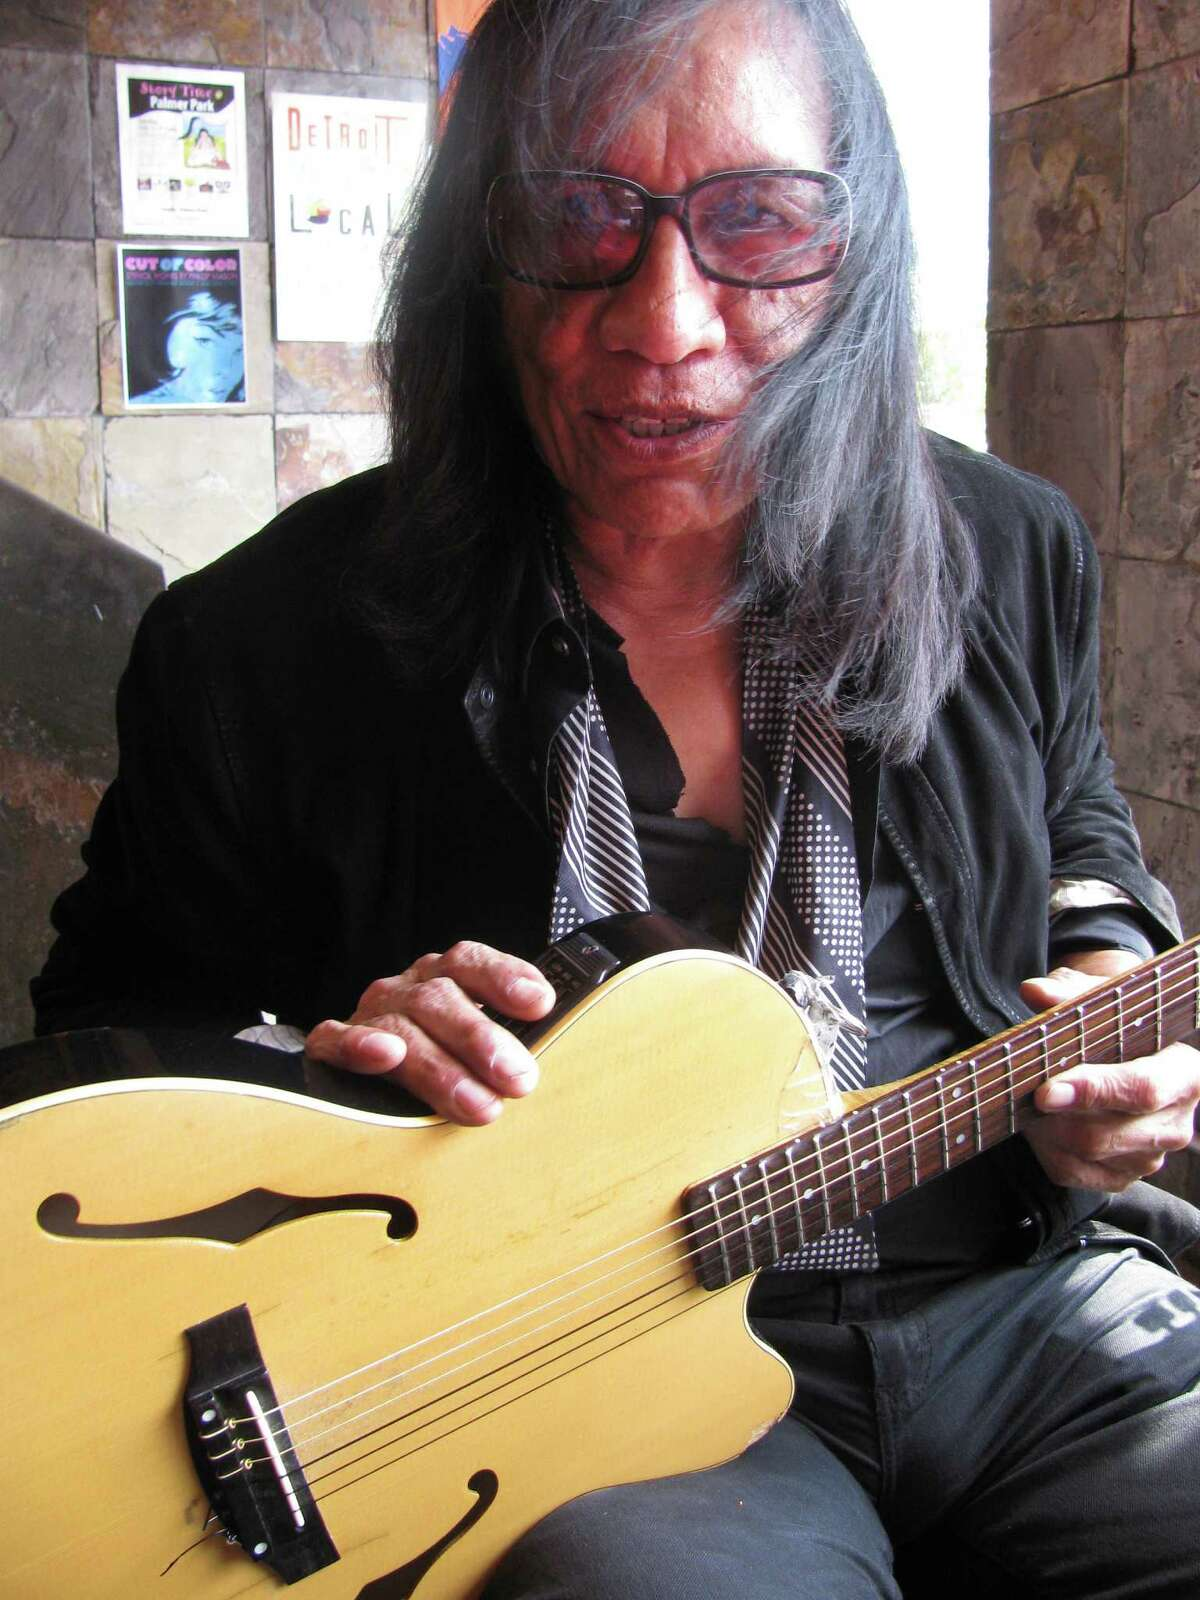 """Sixto Rodriguez made two cult favorite records in the '70s before dropping out of sight. Interest in the singer-songwriter began to swell this year, however, after a film about his life, """"Searching for Sugar Man,"""" won an Oscar for best documentary. May 5 at Warehouse Live"""